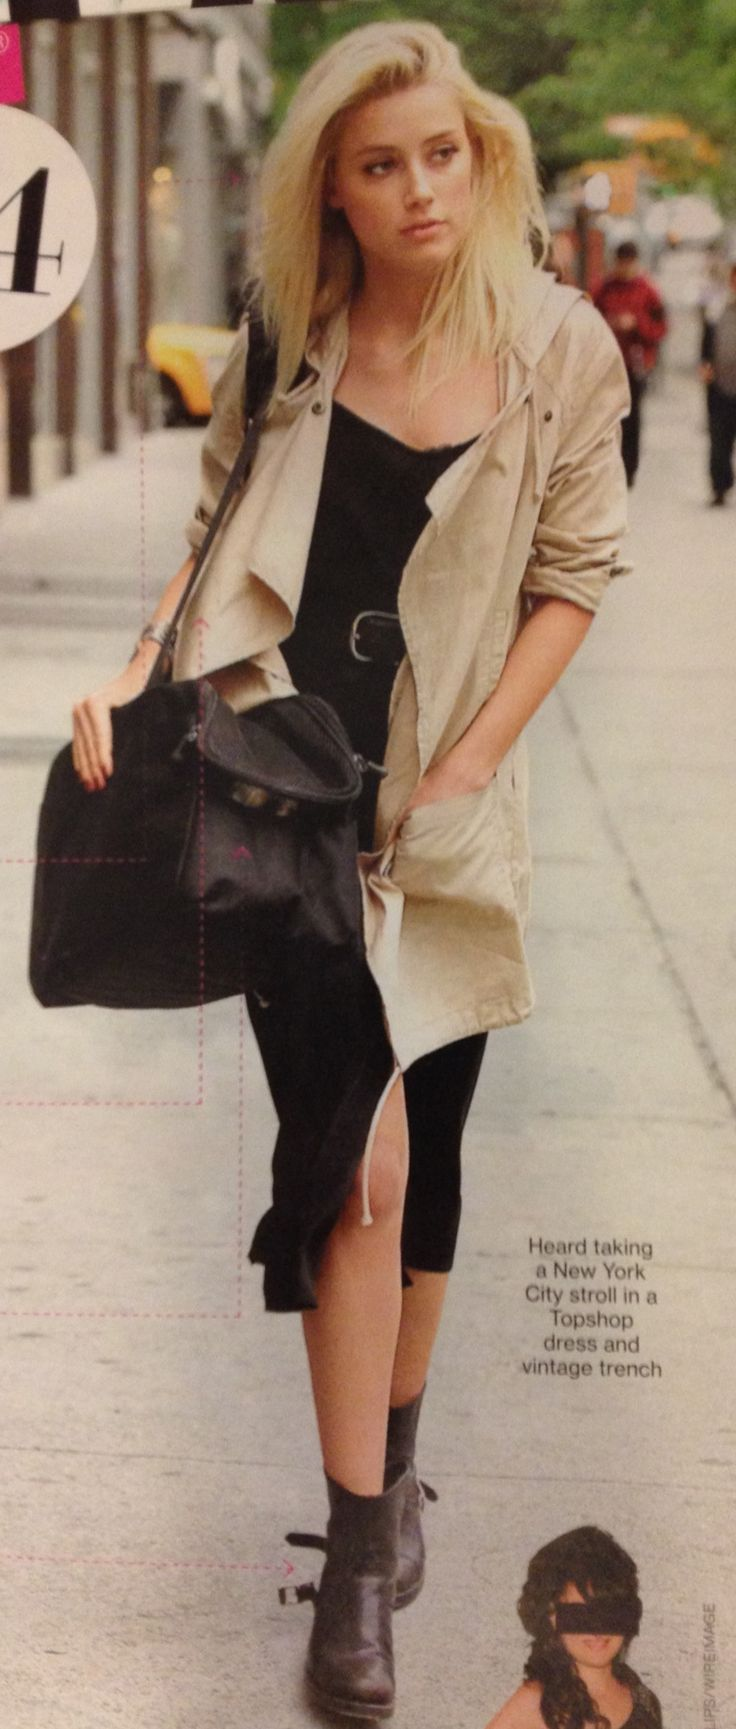 Amber Heard in classic black slip dress with slits, a khaki trench, big buckled belt, and chunky moto boots.